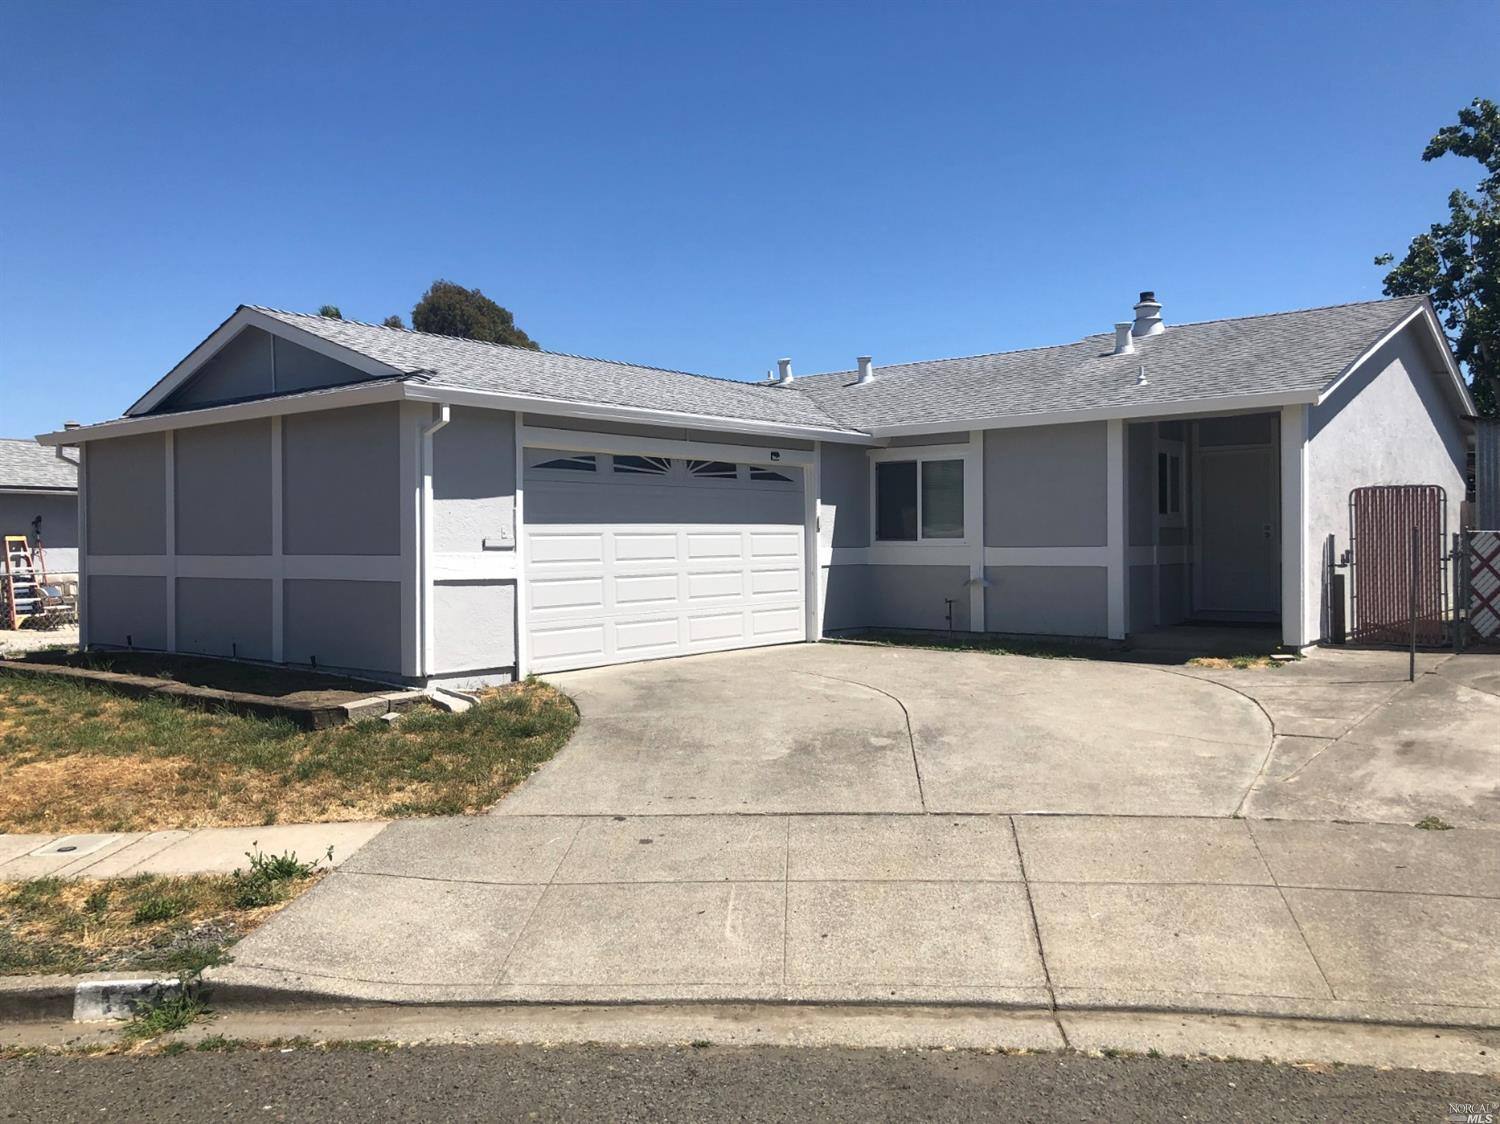 145 Donna Court Vallejo, California 94589, 3 Bedrooms Bedrooms, ,2 BathroomsBathrooms,Residential,For Sale,145 Donna,21916104